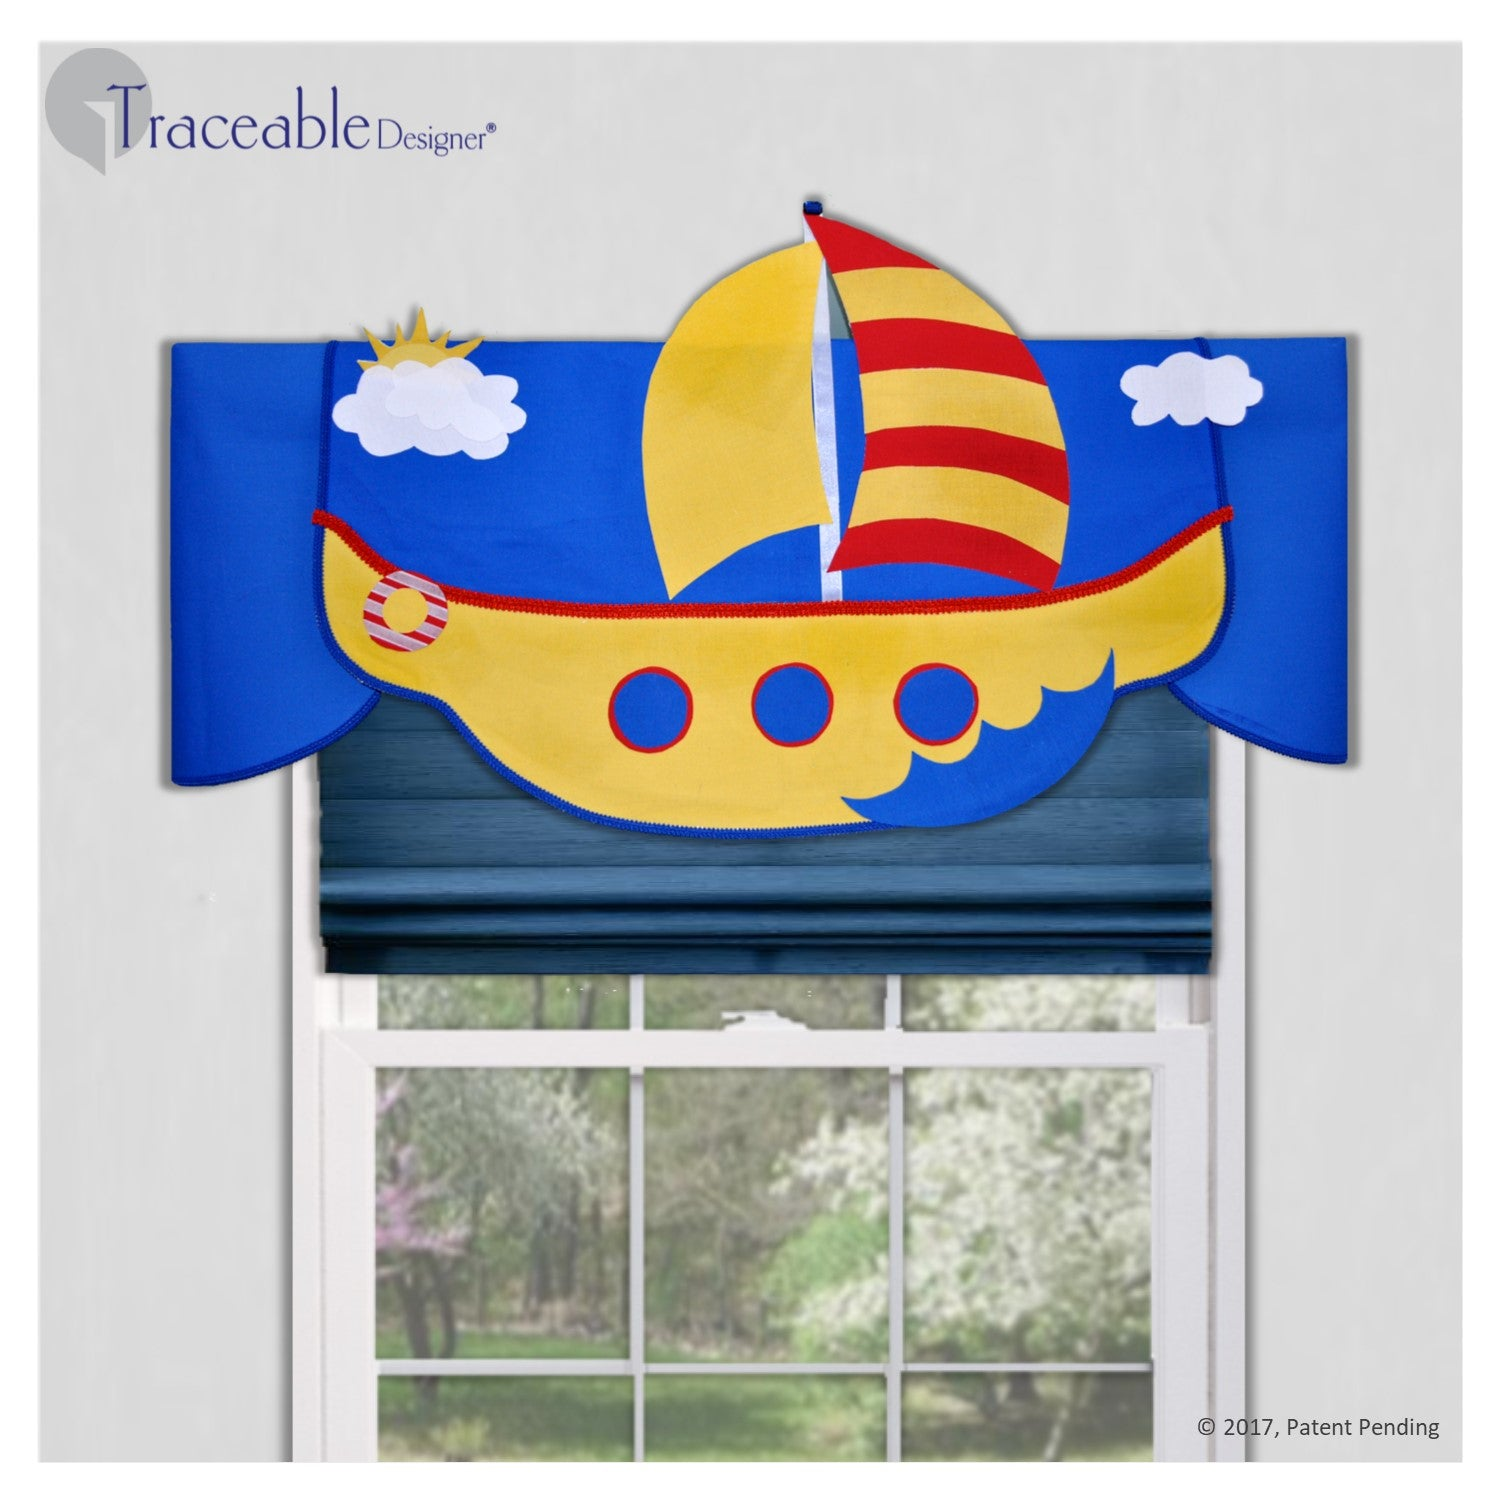 DIY children's sailboat valance, adventure room decor for bedroom or nursery, colorful, no sewing, kit also includes rocket, sub and airplane window treatments